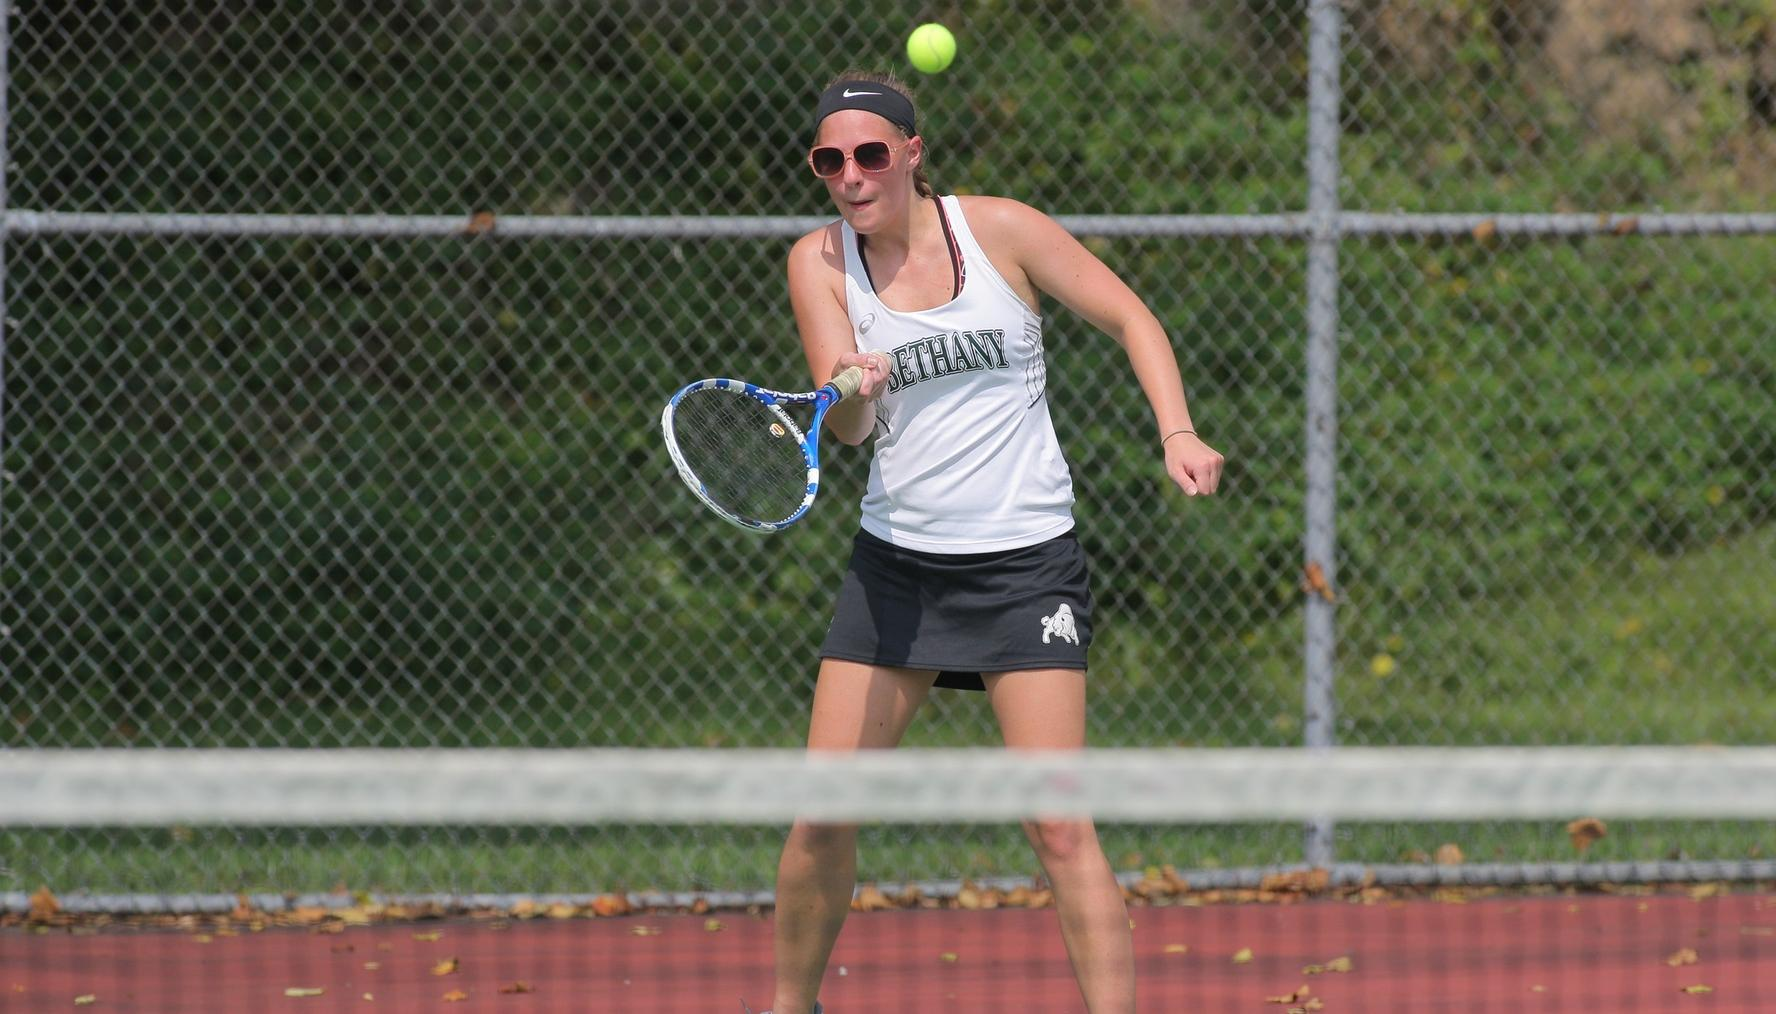 Women's tennis edges Thiel, 5-4